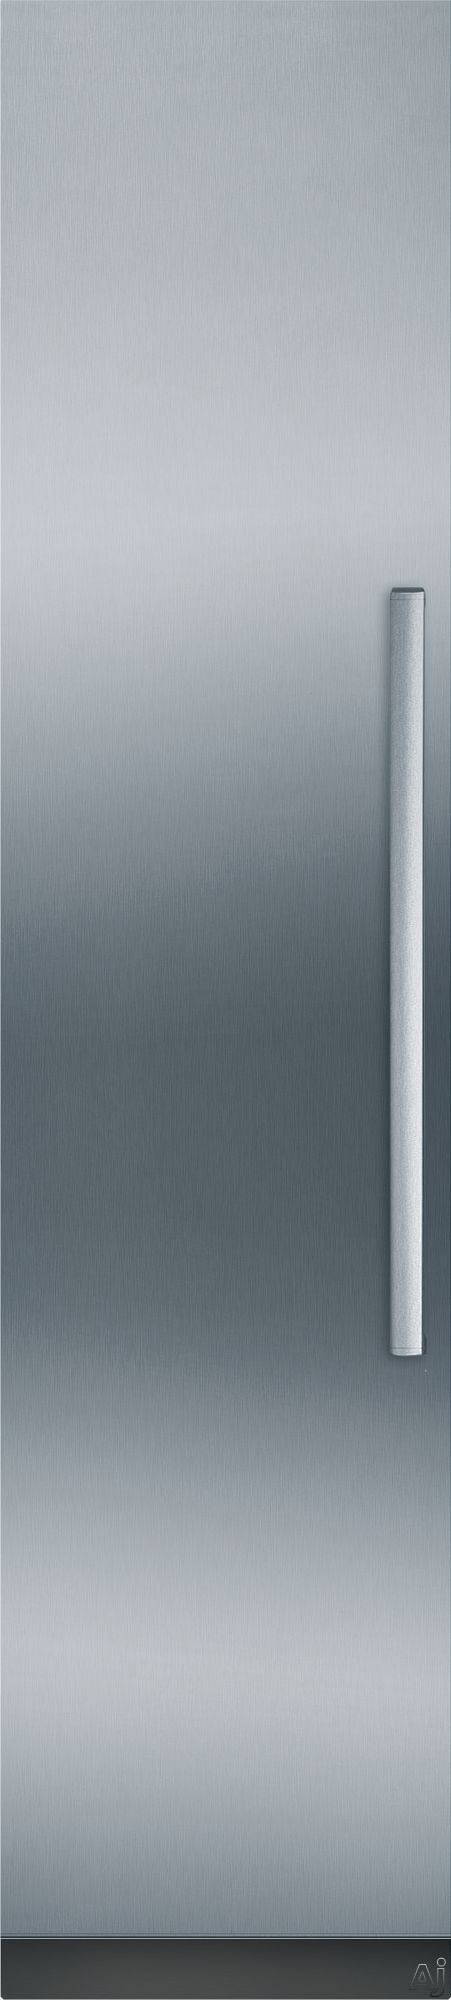 Bosch B18IF900SP 18 Inch Built-In Panel Ready